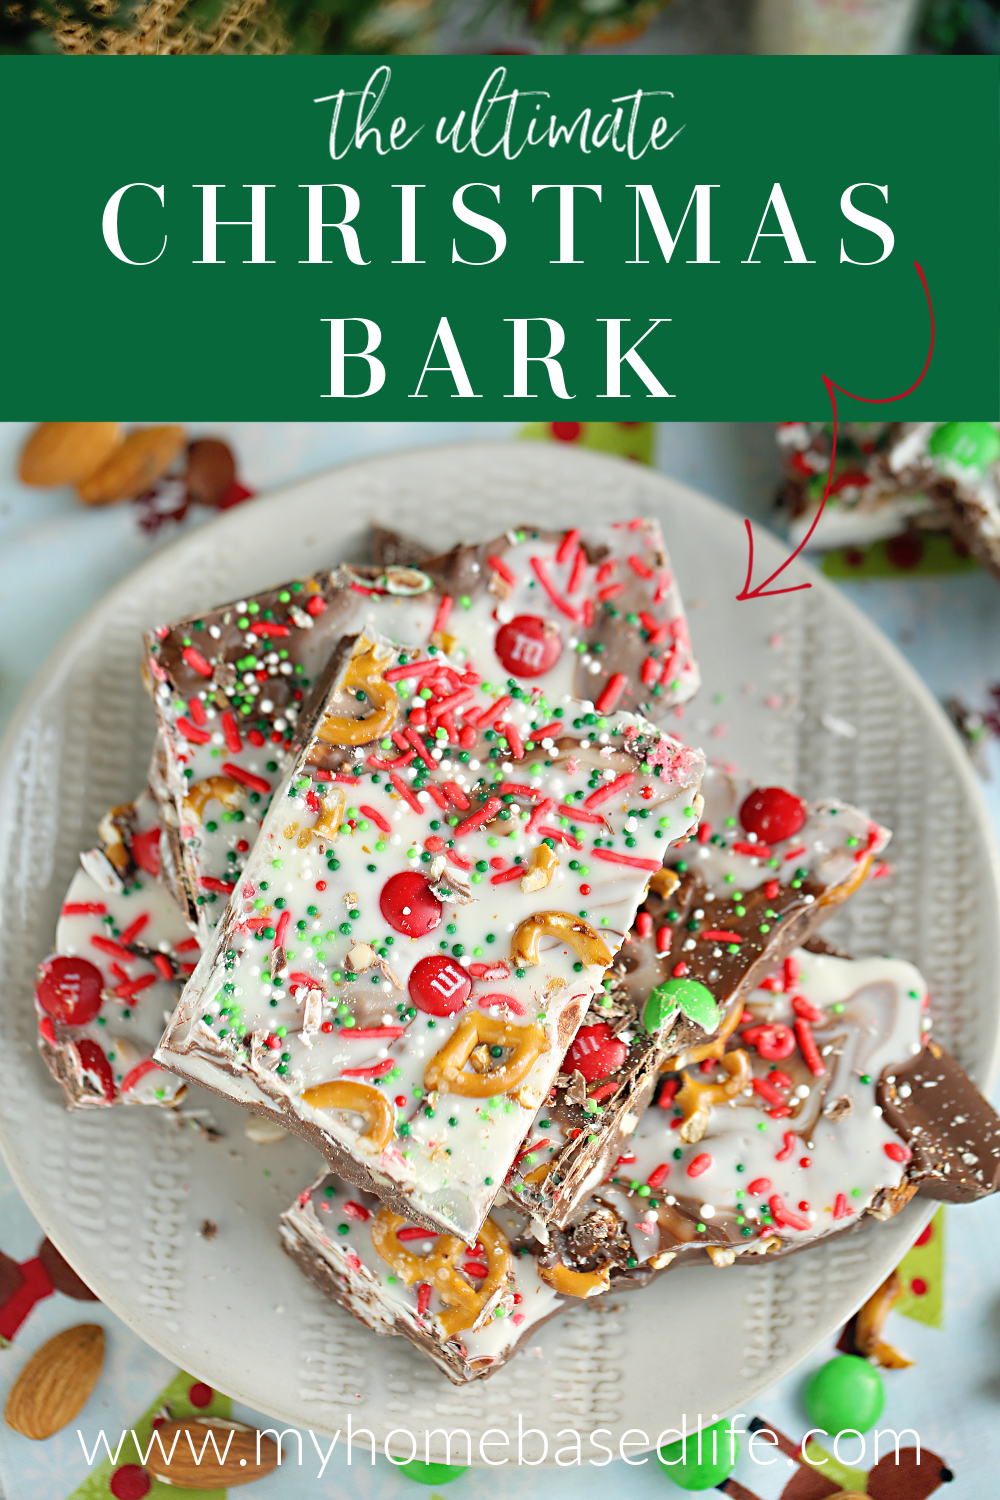 ultimate kitchen sink Christmas bark recipe an easy no bake Christmas dessert recipe